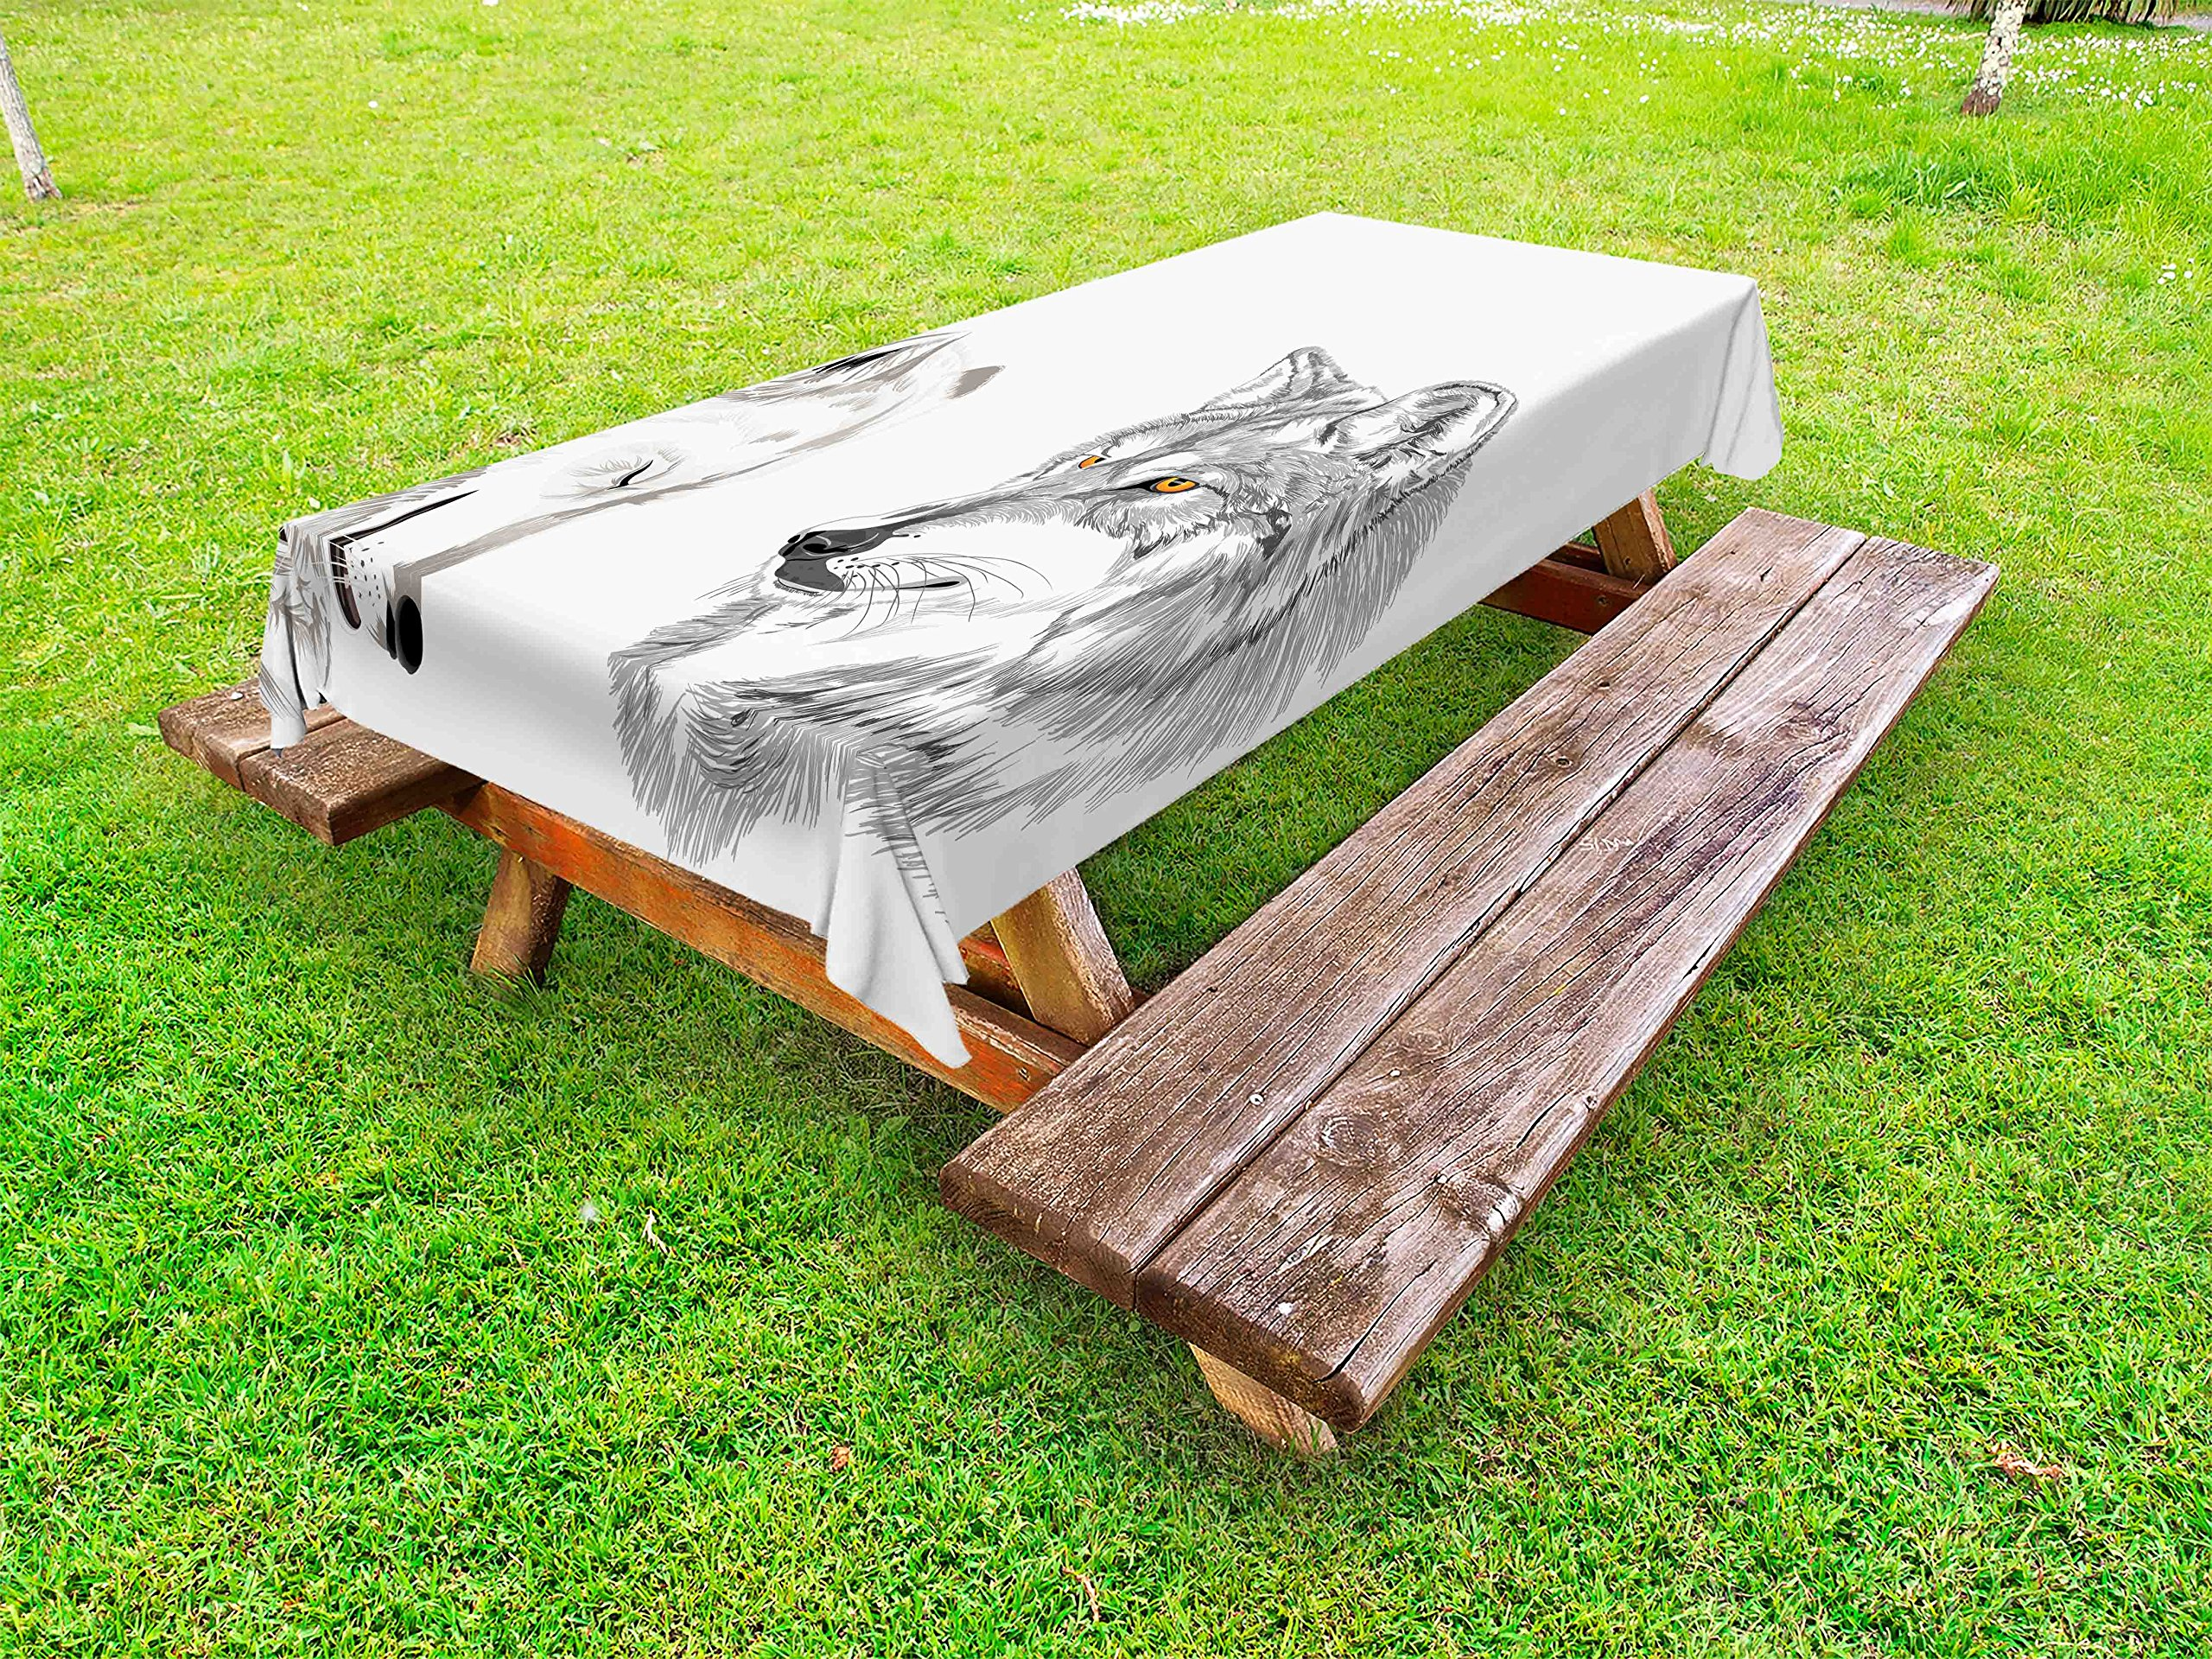 Ambesonne Sketchy Outdoor Tablecloth, Two Wolf Portraits Sleeping Hunting Carnivore Animals Nature Wildlife Theme, Decorative Washable Picnic Table Cloth, 58 X 120 inches, Beige Grey Orange